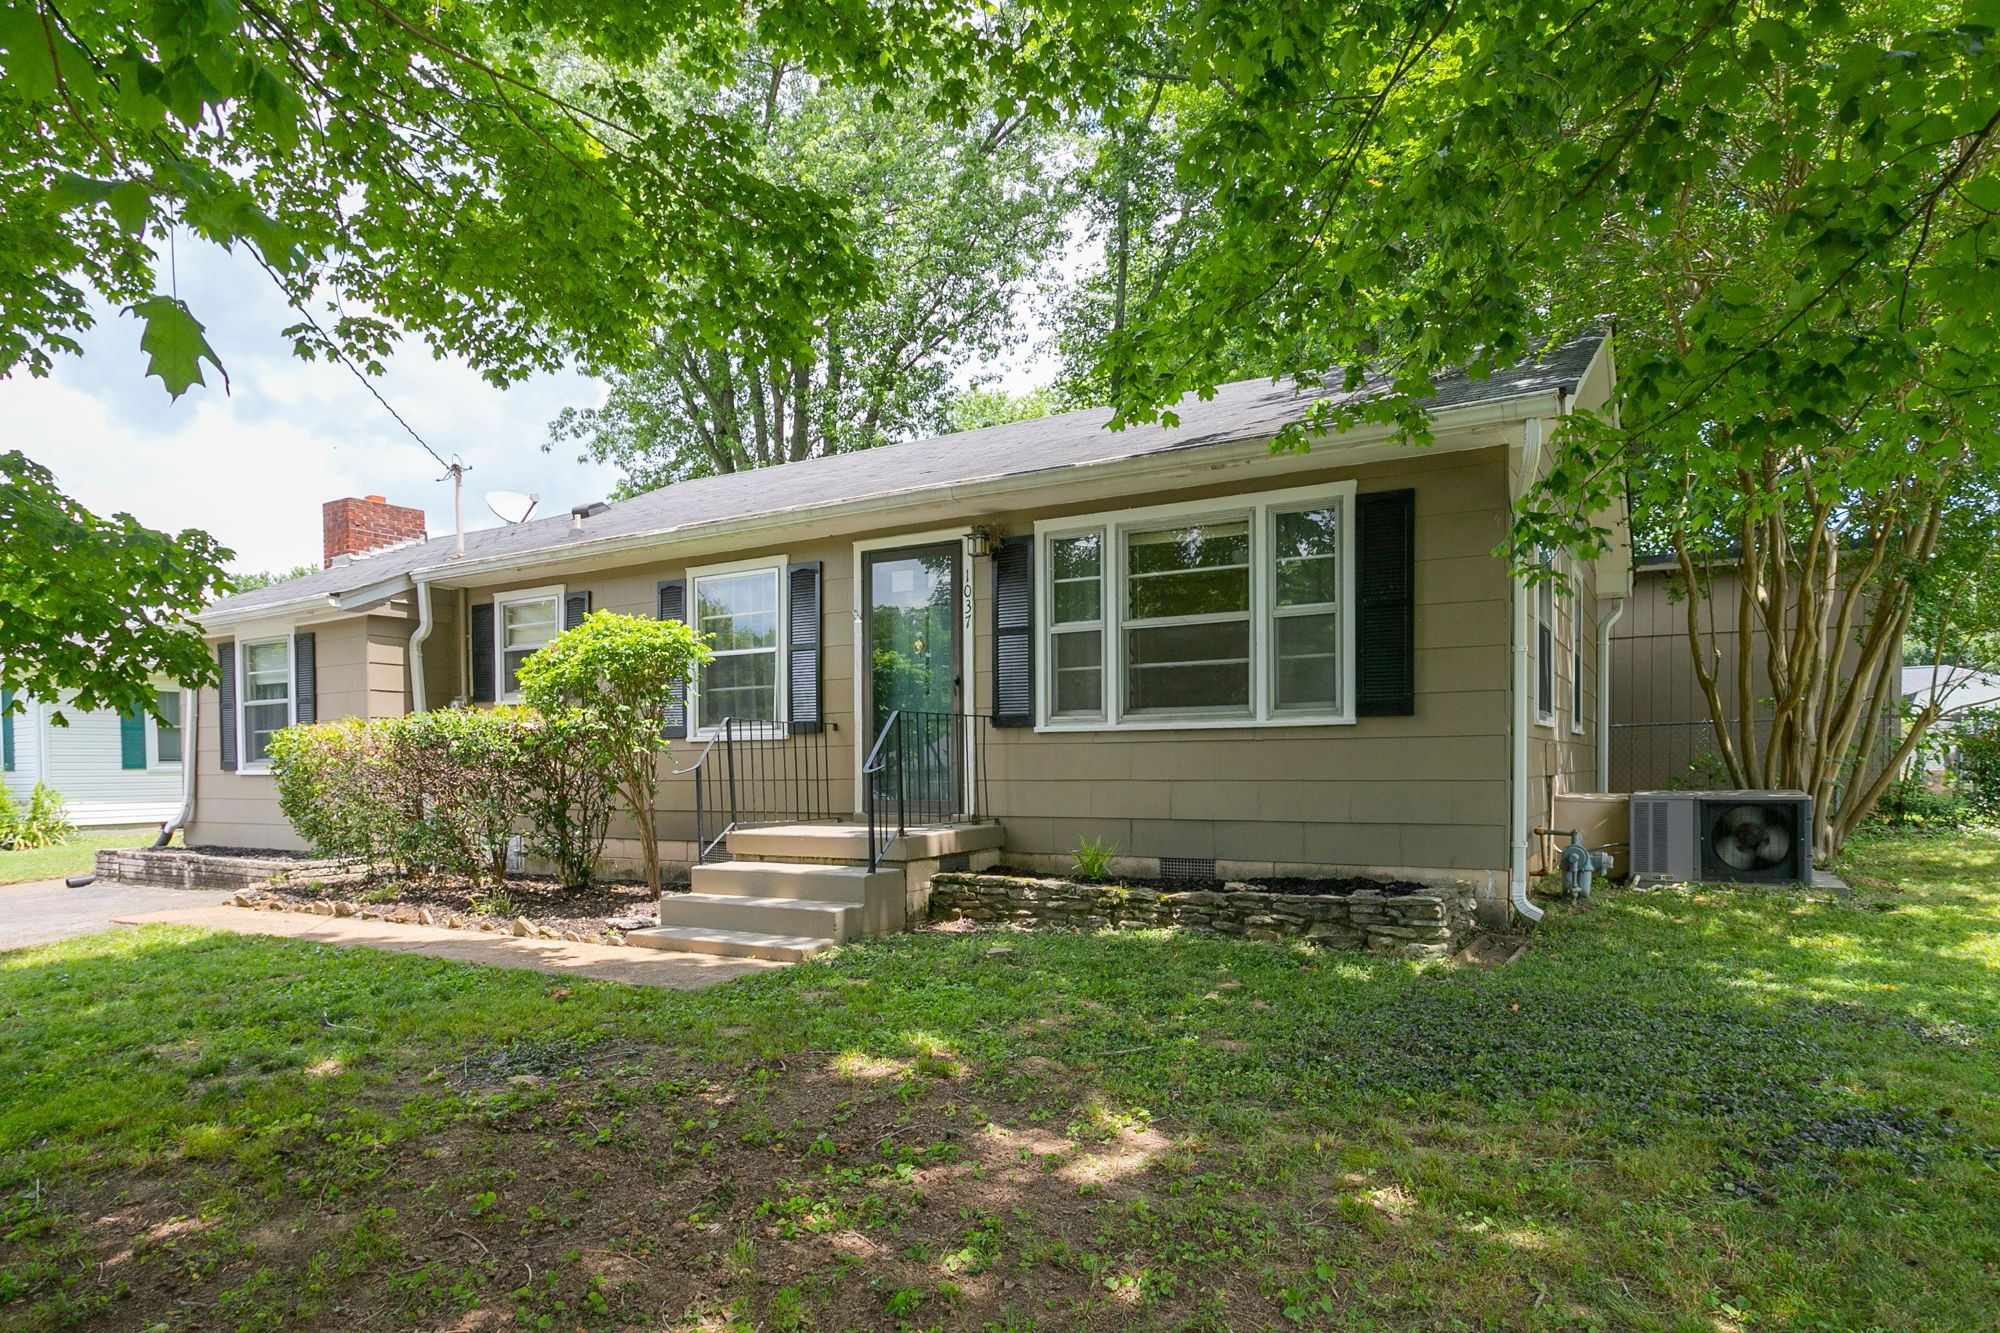 Imagine a relaxing, mosquito free evening inside of a screened in patio overlooking your fenced in back yard. This quaint 2 bedroom 1 bath features two living rooms, eat in kitchen, and HUGE laundry room. This charmer is just waiting for your special touch! Don't miss out!